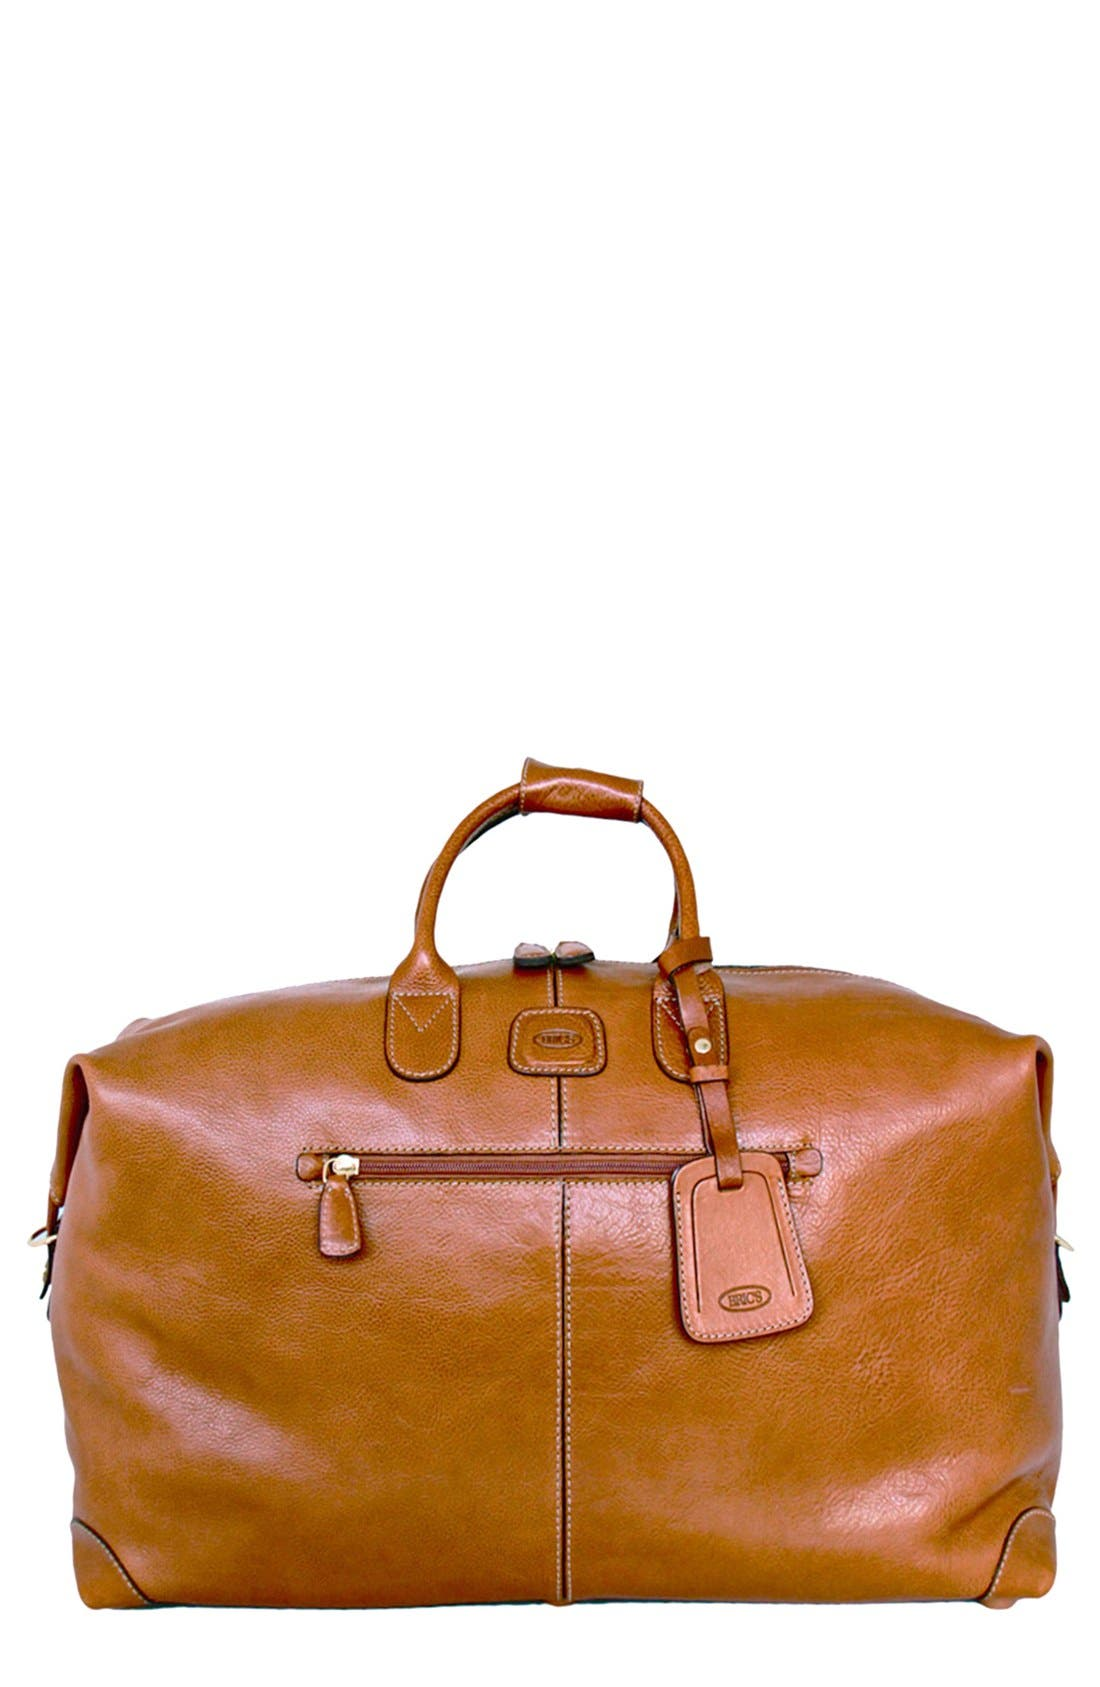 Alternate Image 1 Selected - Bric's 'Pelle' Duffel Bag (18 Inch)